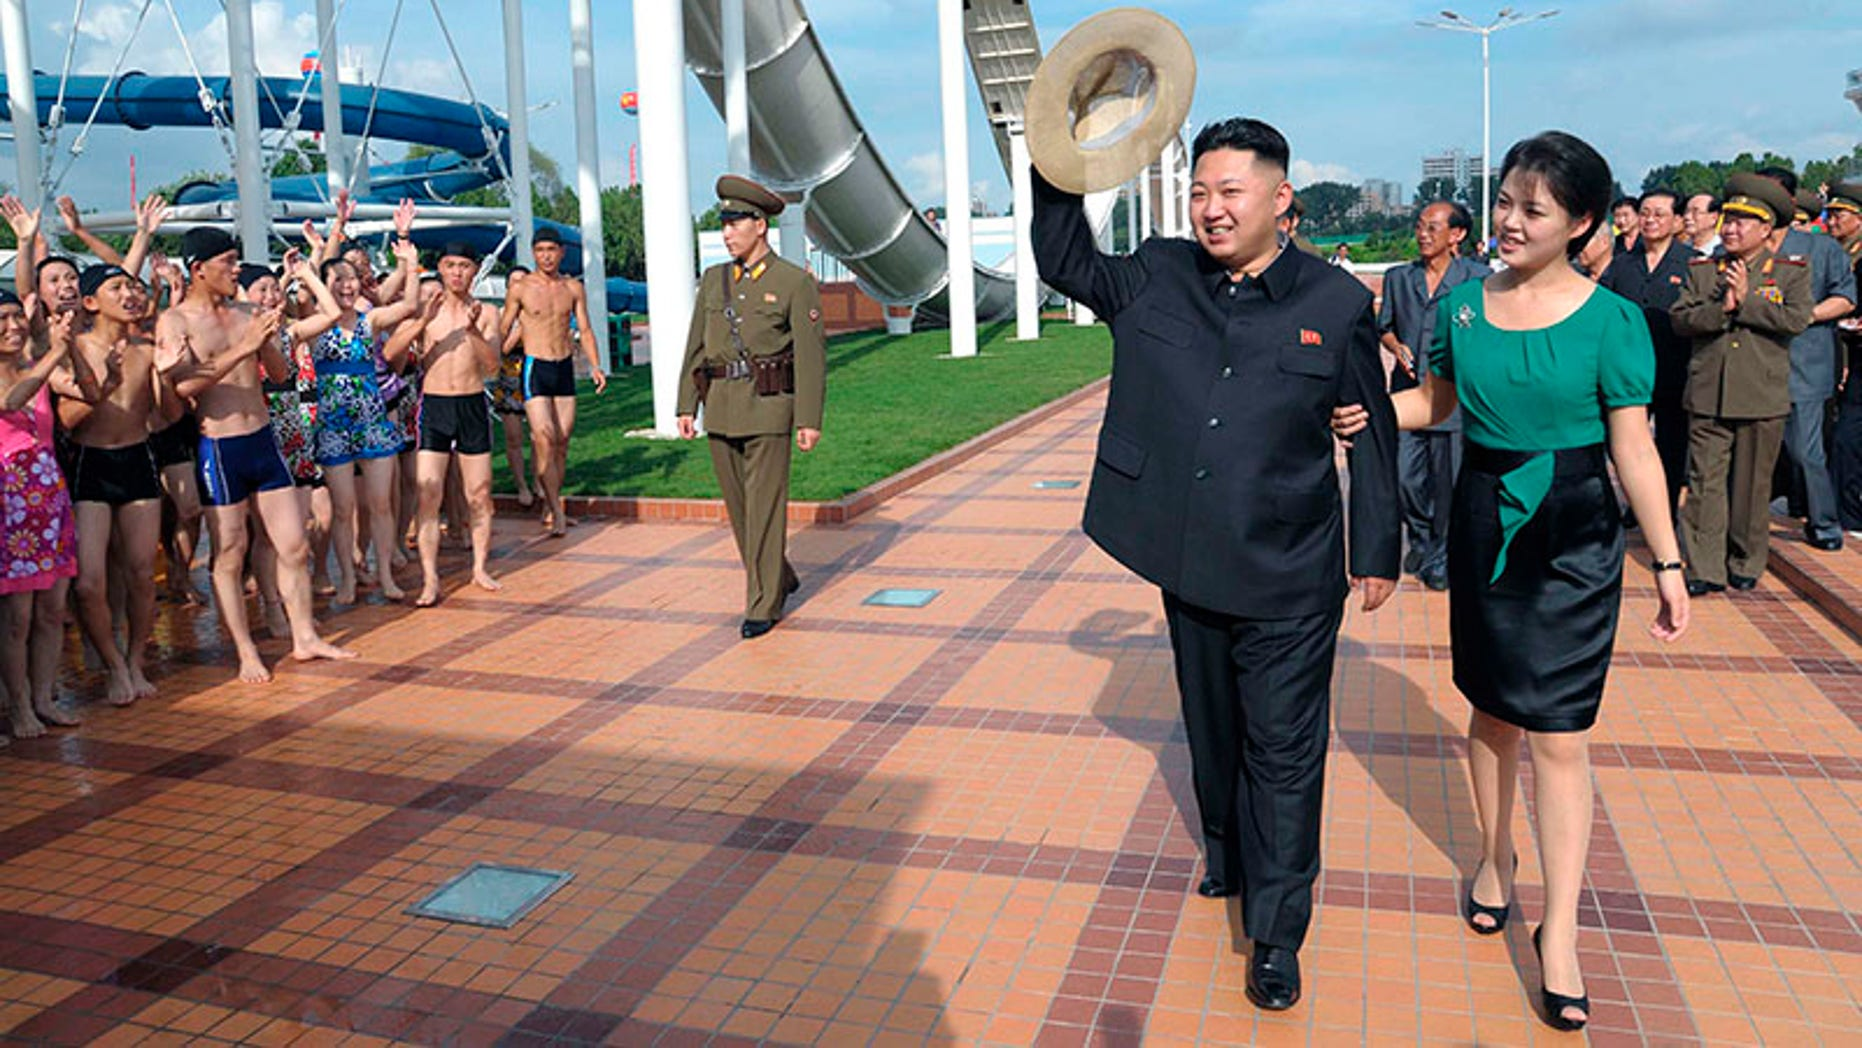 North Korean leader Kim Jong Un and his wife Ri Sol-ju attend the opening ceremony of the Rungna People's Pleasure Ground on Rungna Islet along the Taedong River in Pyongyang July 25, 2012. This photograph was released by the North's KCNA to Reuters on July 26, 2012.